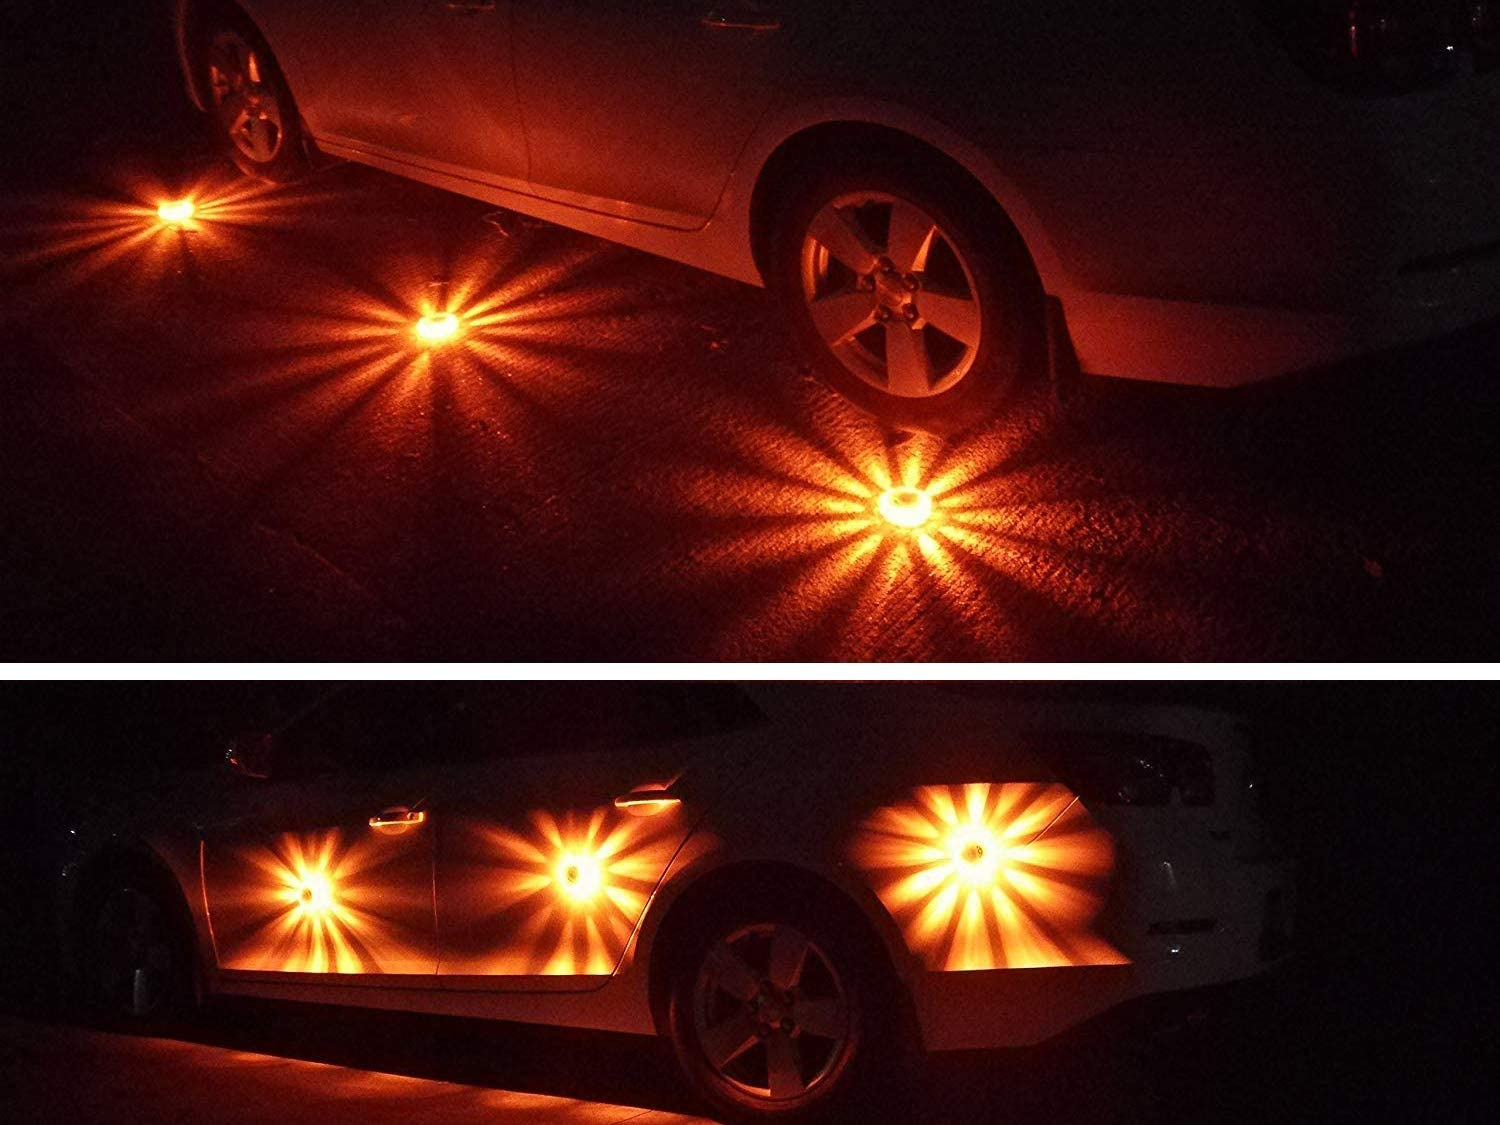 LED Road Flares Blinkendes Warnlicht